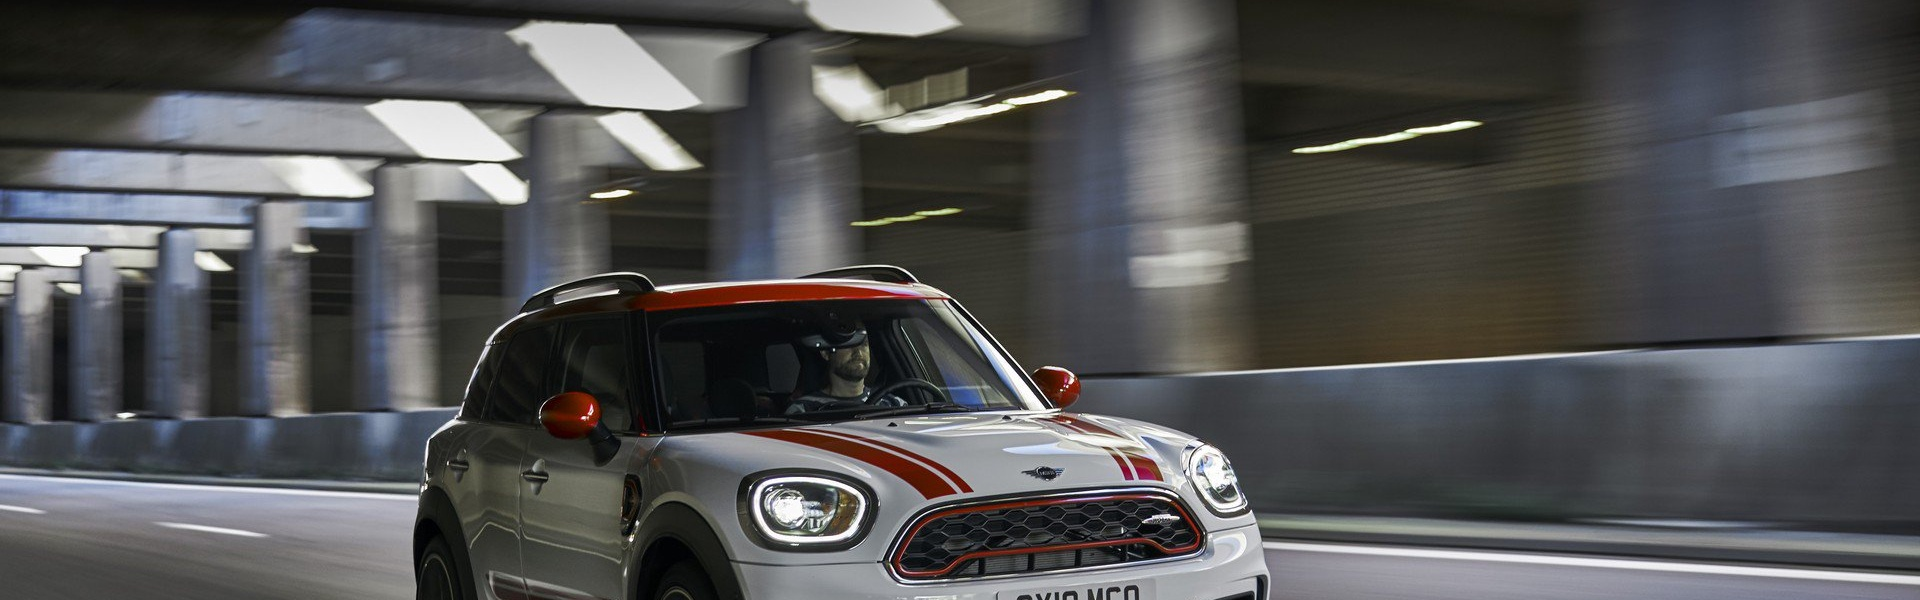 mini-jcw-countryman-13.jpg